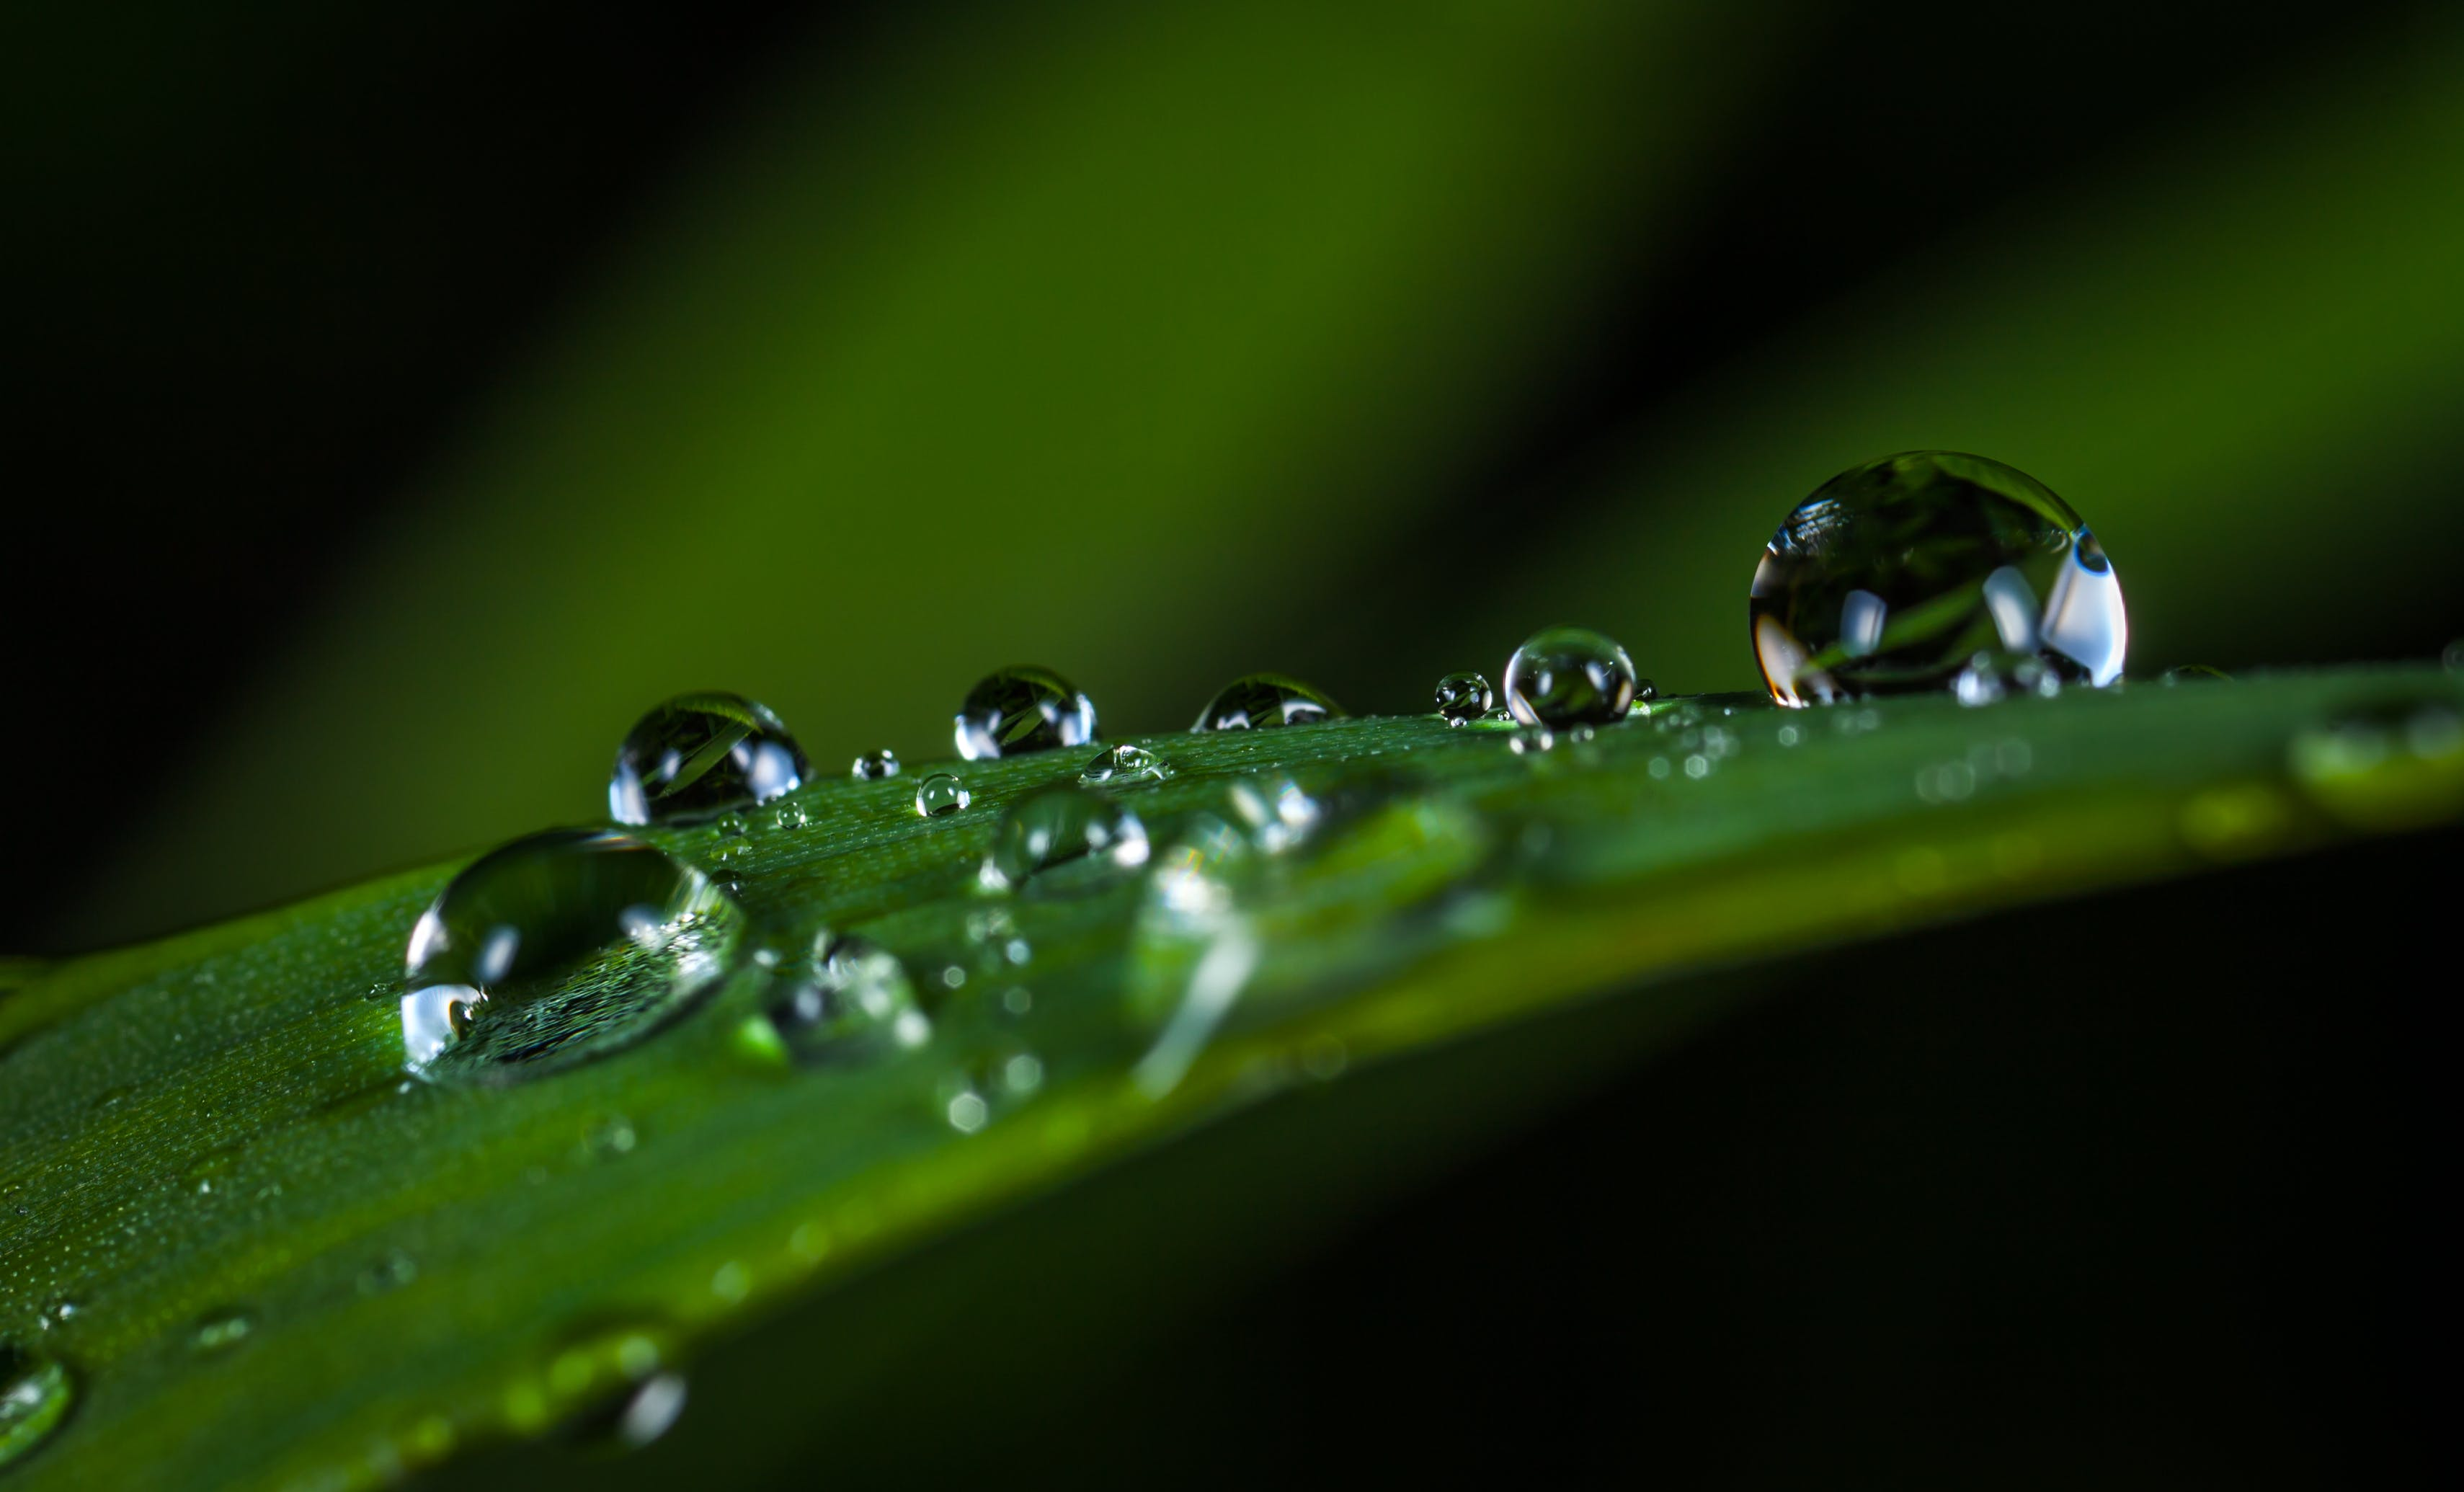 Macro Photography of Water Drops